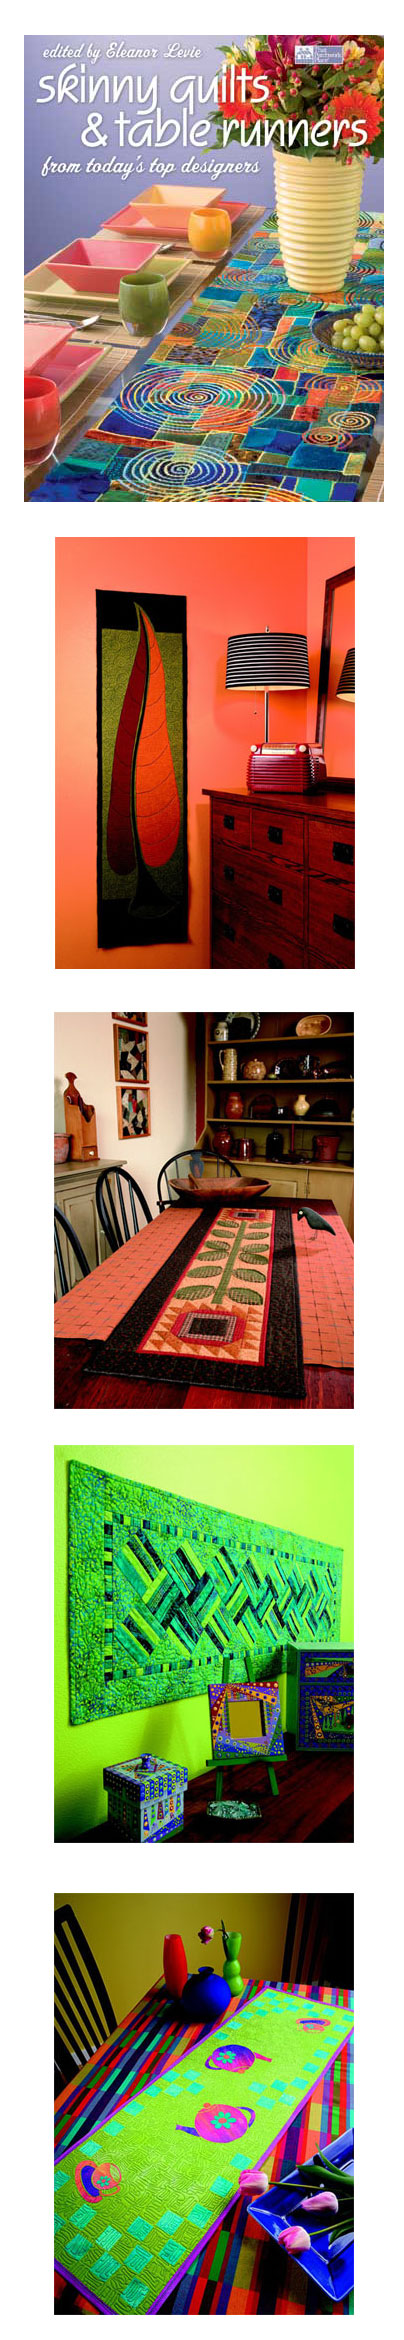 Skinny Quilts & Table Runners